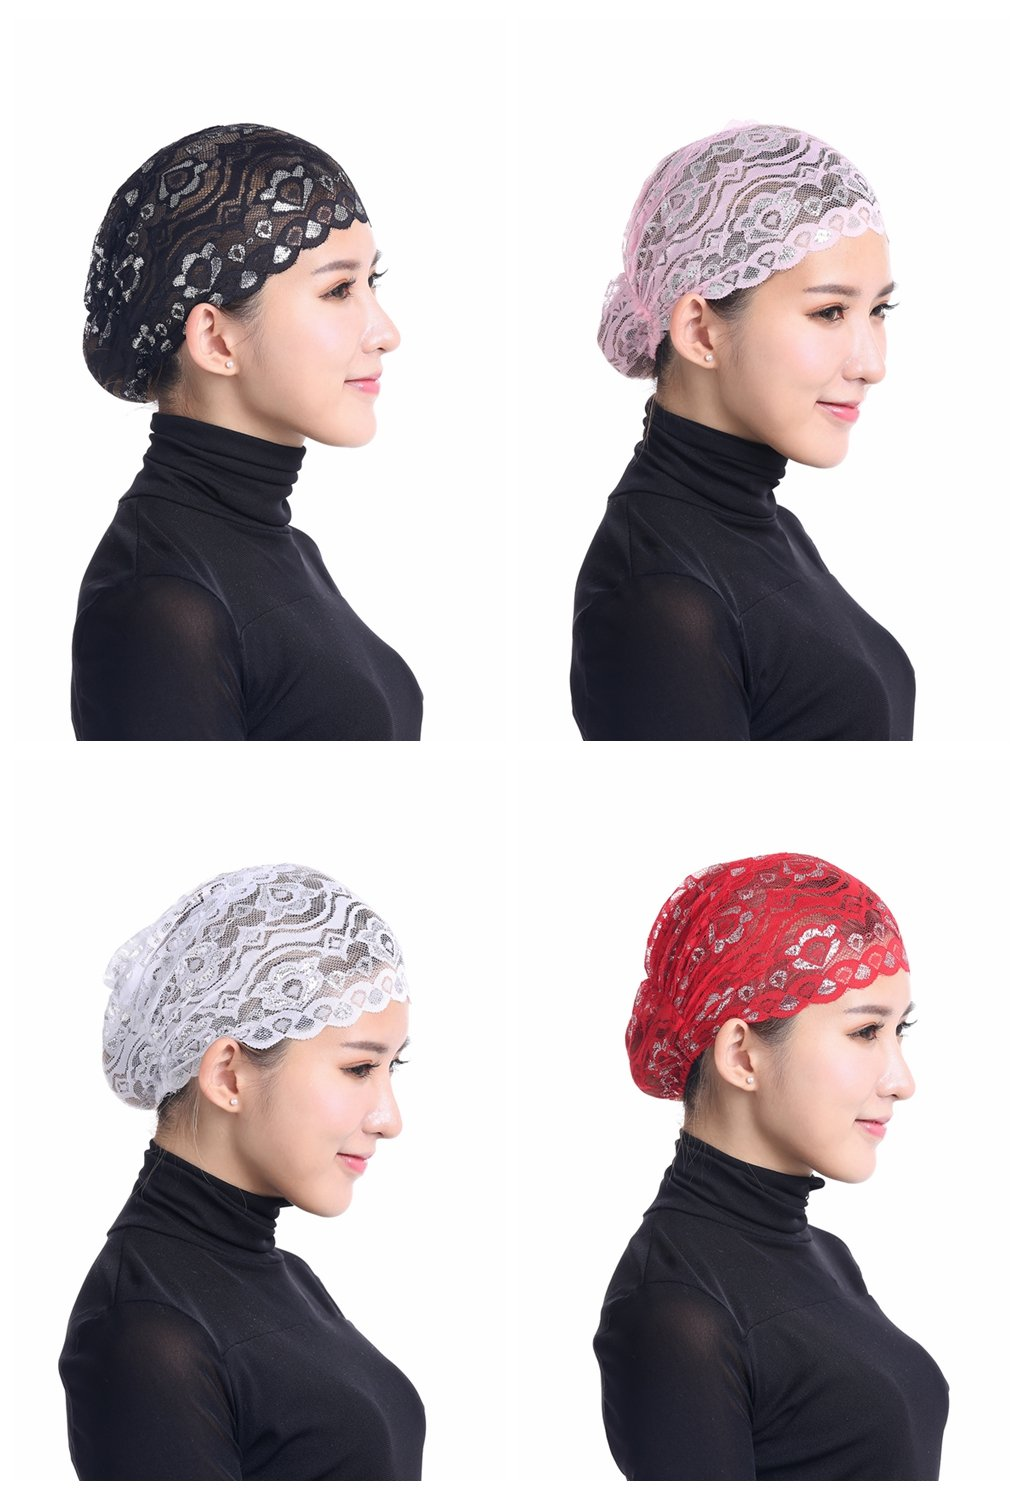 Ksweet 4pcs Shiny Lace Head Cover Stretch Head Cap Bonnet Women Underscarf (Black-Pink-White-Red)